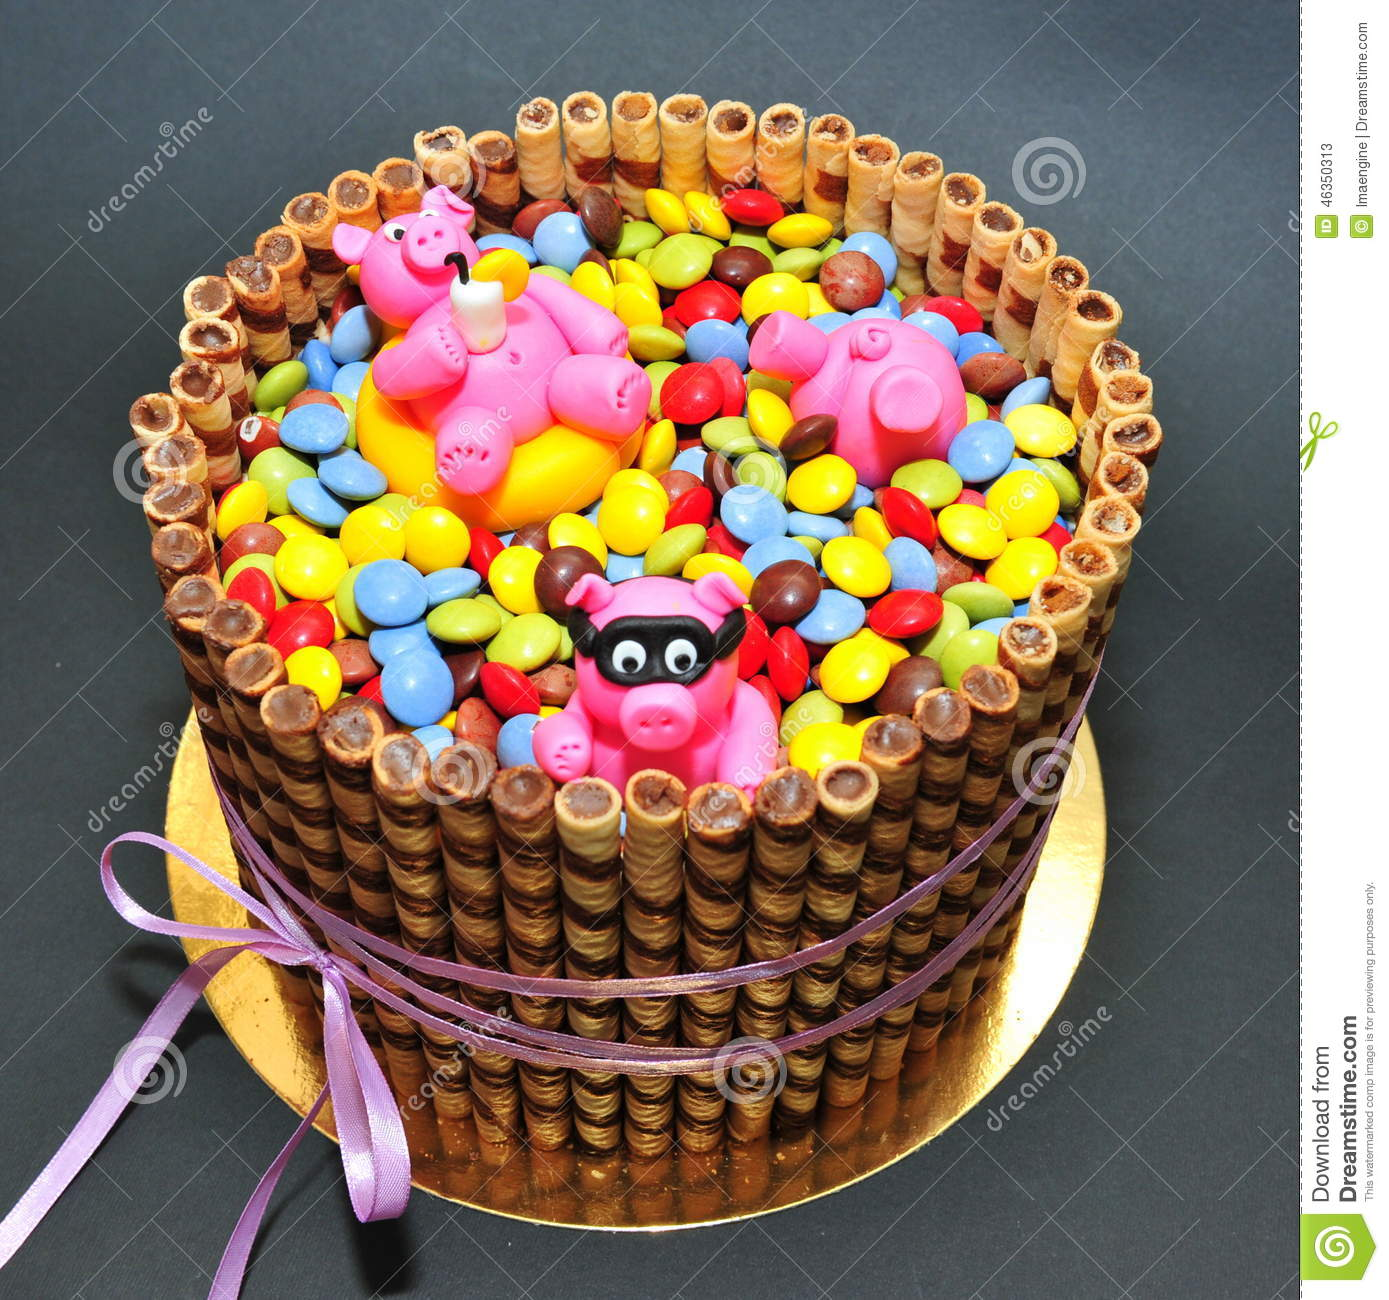 Tremendous Funny Pink Piglets In A Pool Of Candy Birthday Cake Stock Image Personalised Birthday Cards Cominlily Jamesorg